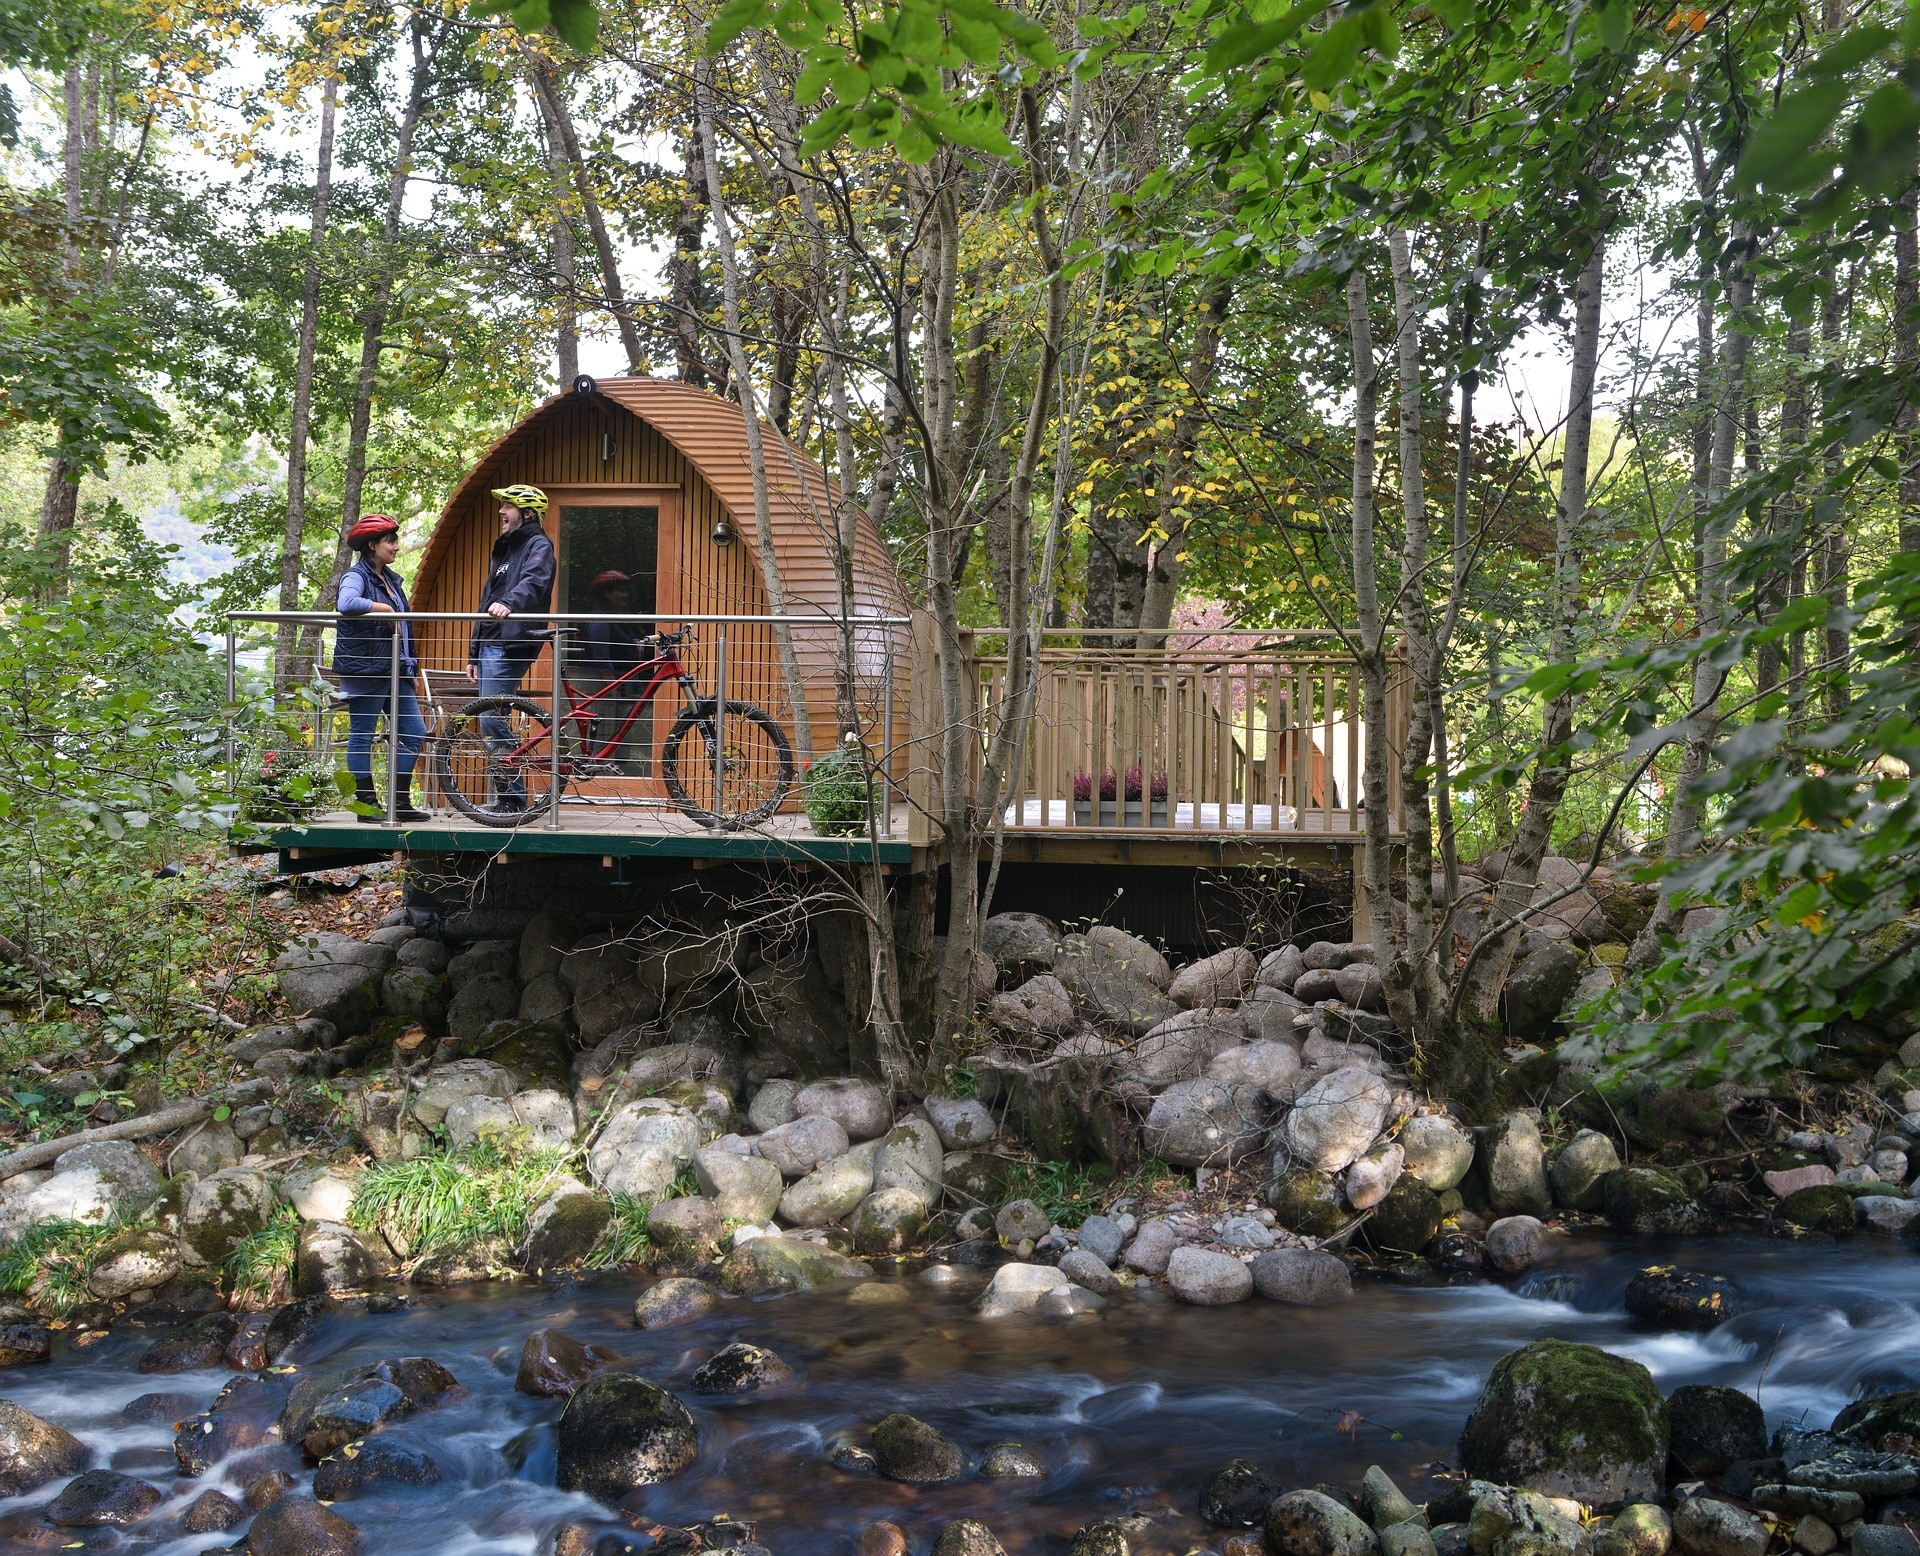 Glamping: 4 Best Worldwide Luxury Campsites and Glamping Ideas